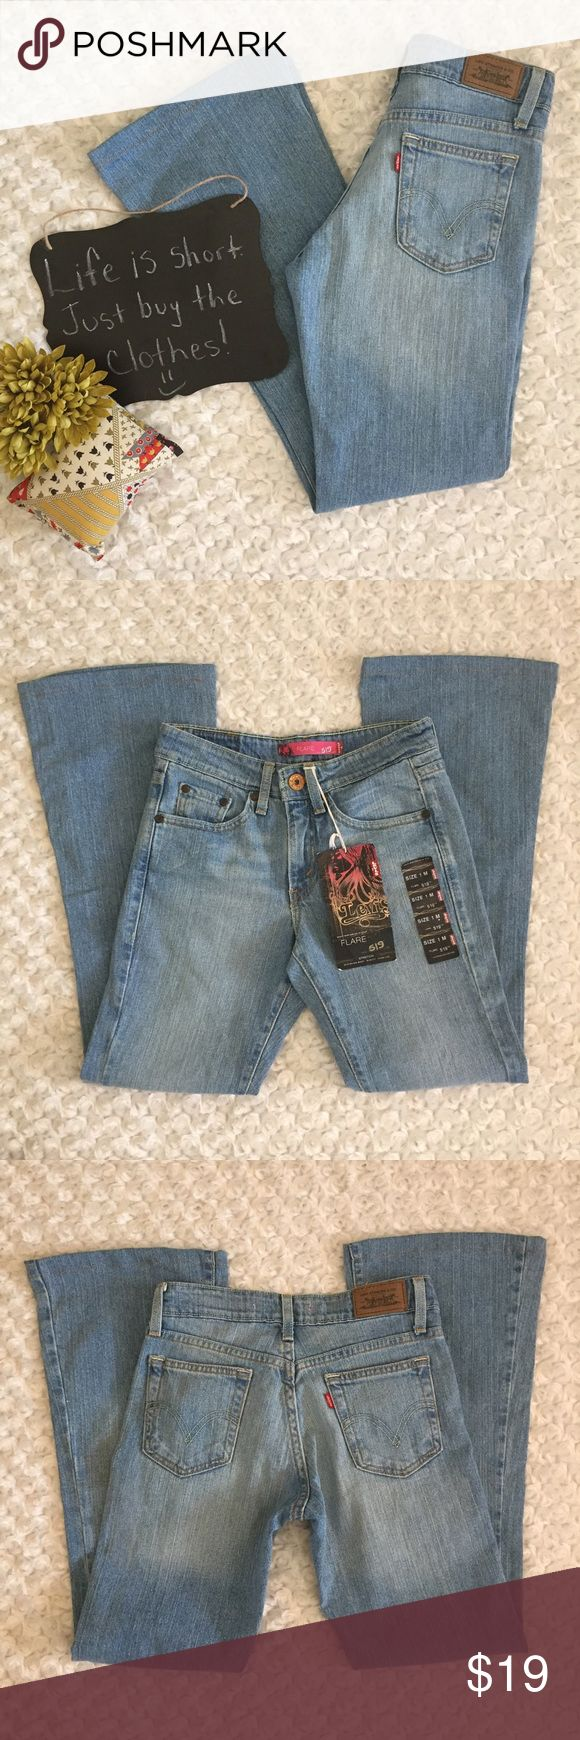 "Levi's 519 juniors jeans Light wash Levi's juniors size 1 M jeans. 29"" inseam. These are NWT. Levi's Jeans Boot Cut"